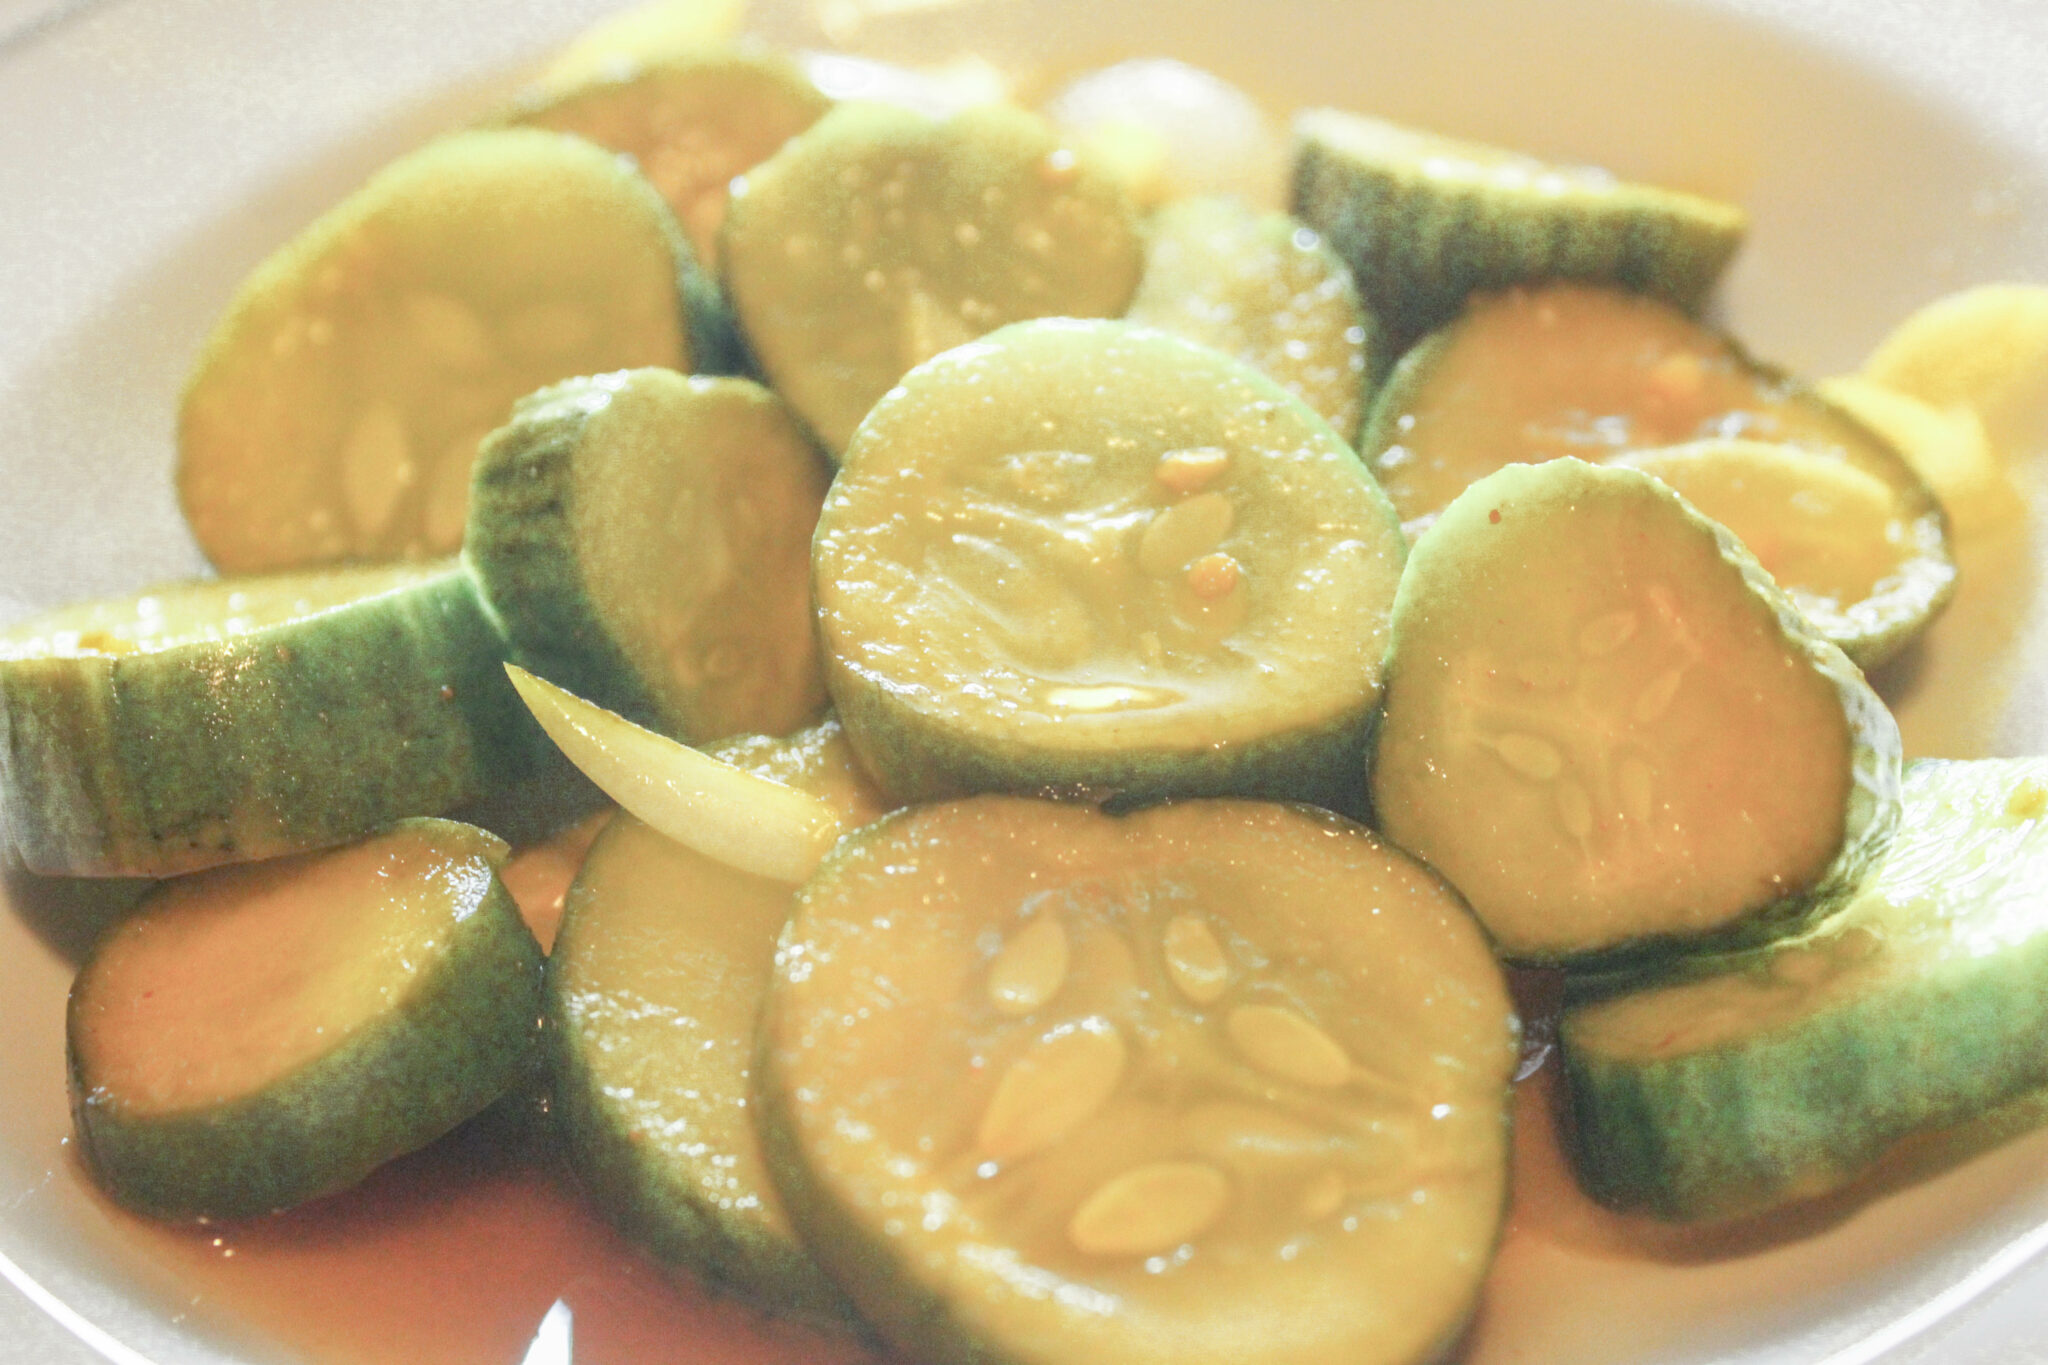 My Bread and Butter Refrigerator Pickles are sugar-free and a THM:FP!